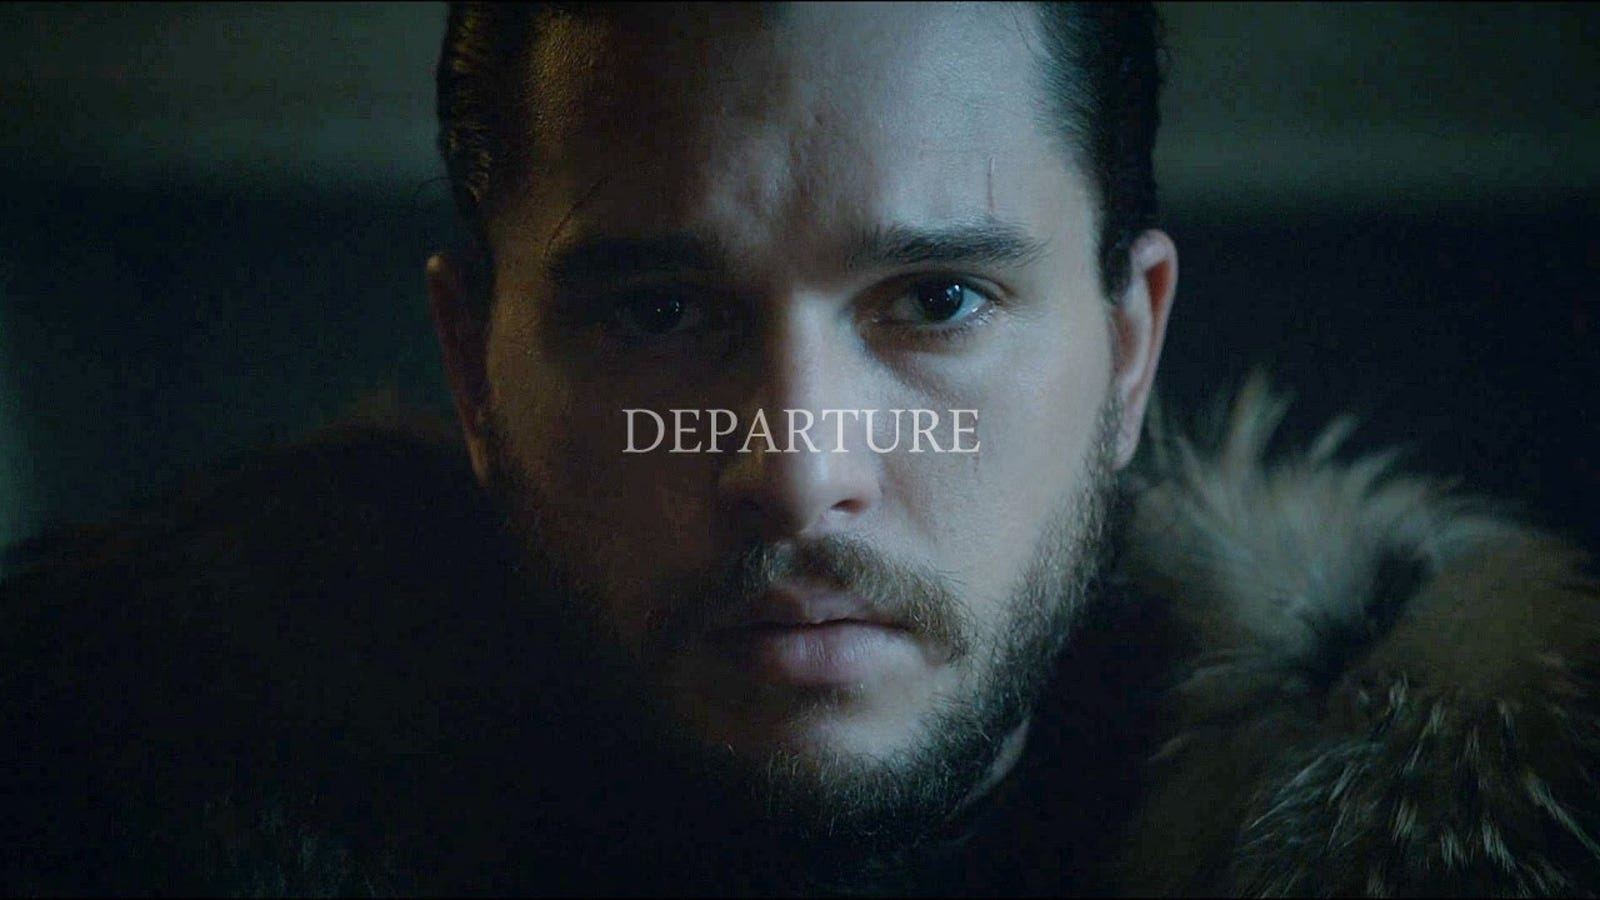 You Must See This Supercut of Every Clue About Jon Snow's Origin From Game of Thrones